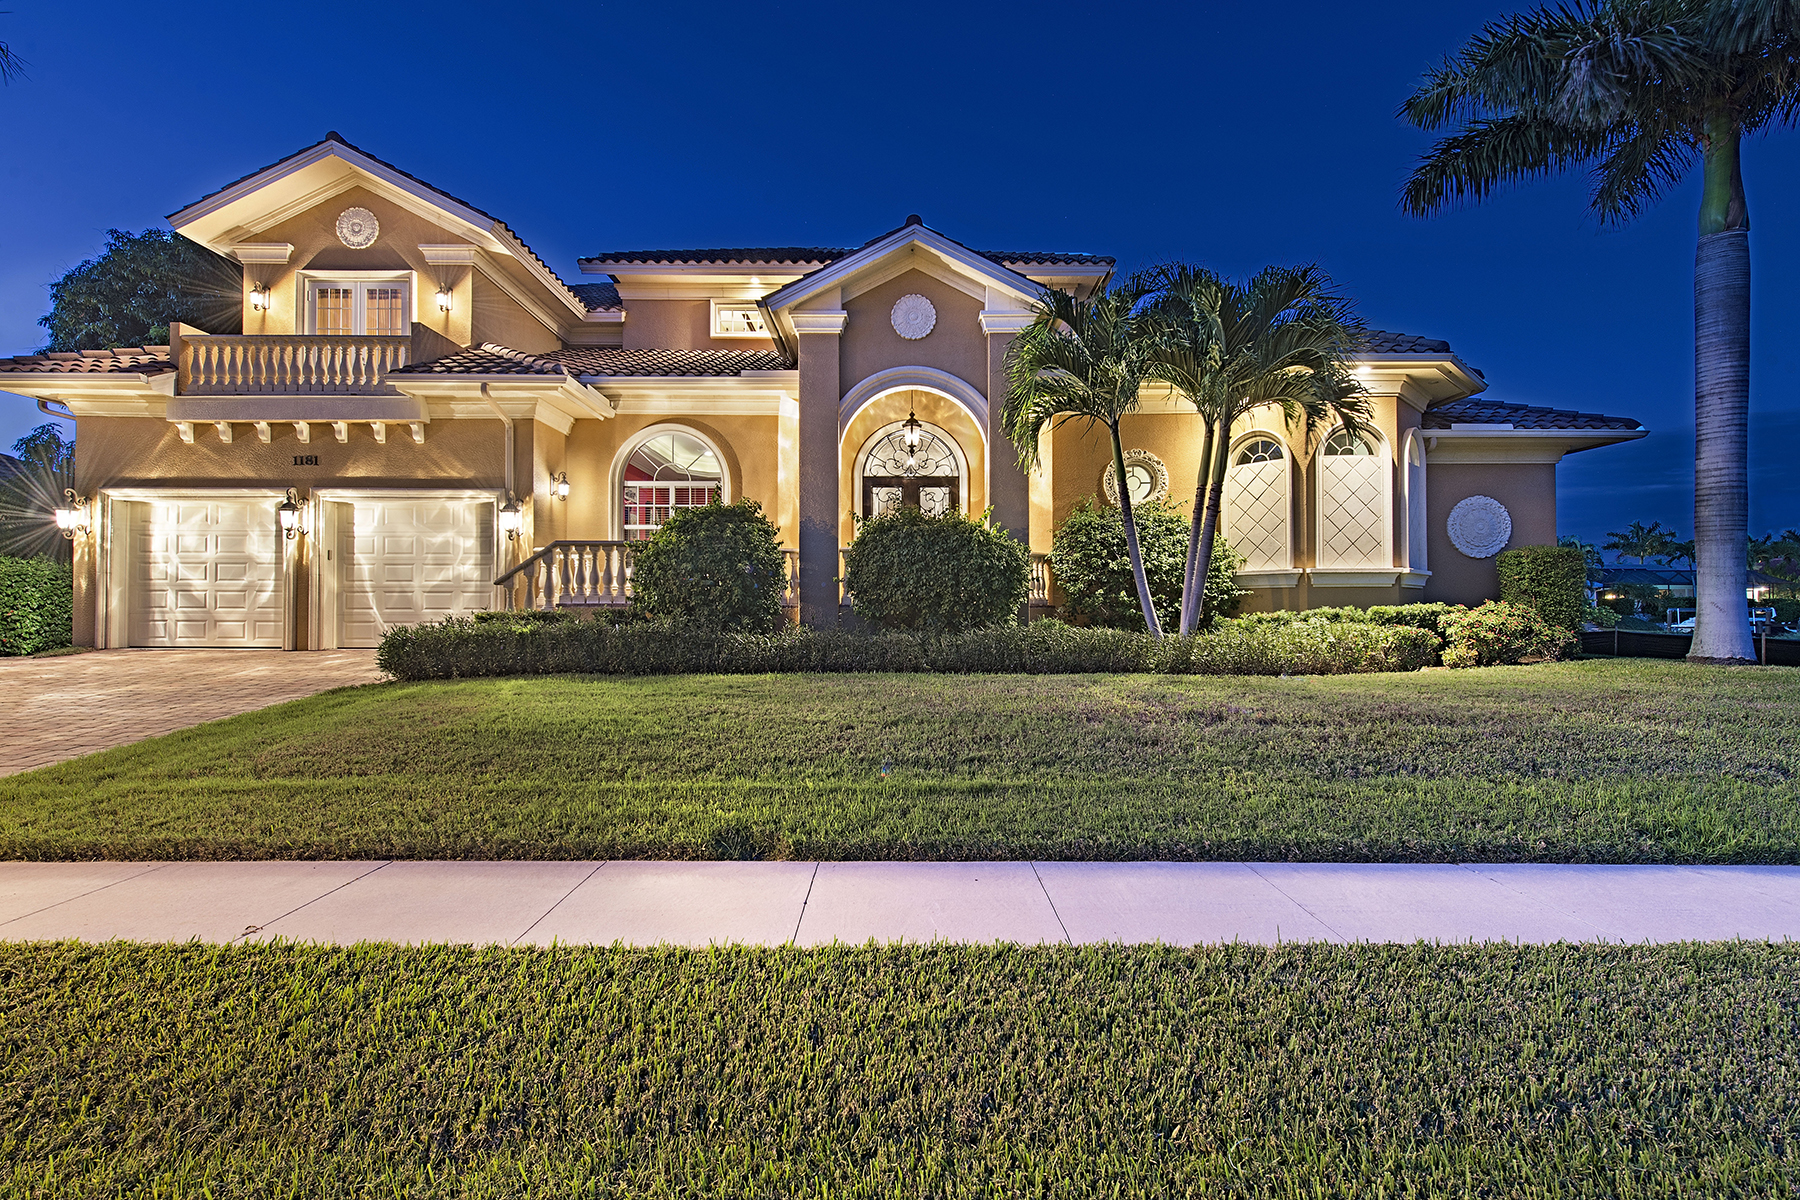 Single Family Home for Sale at MARCO ISLAND - OSPREY CT. 1181 Osprey Ct Marco Island, Florida 34145 United States